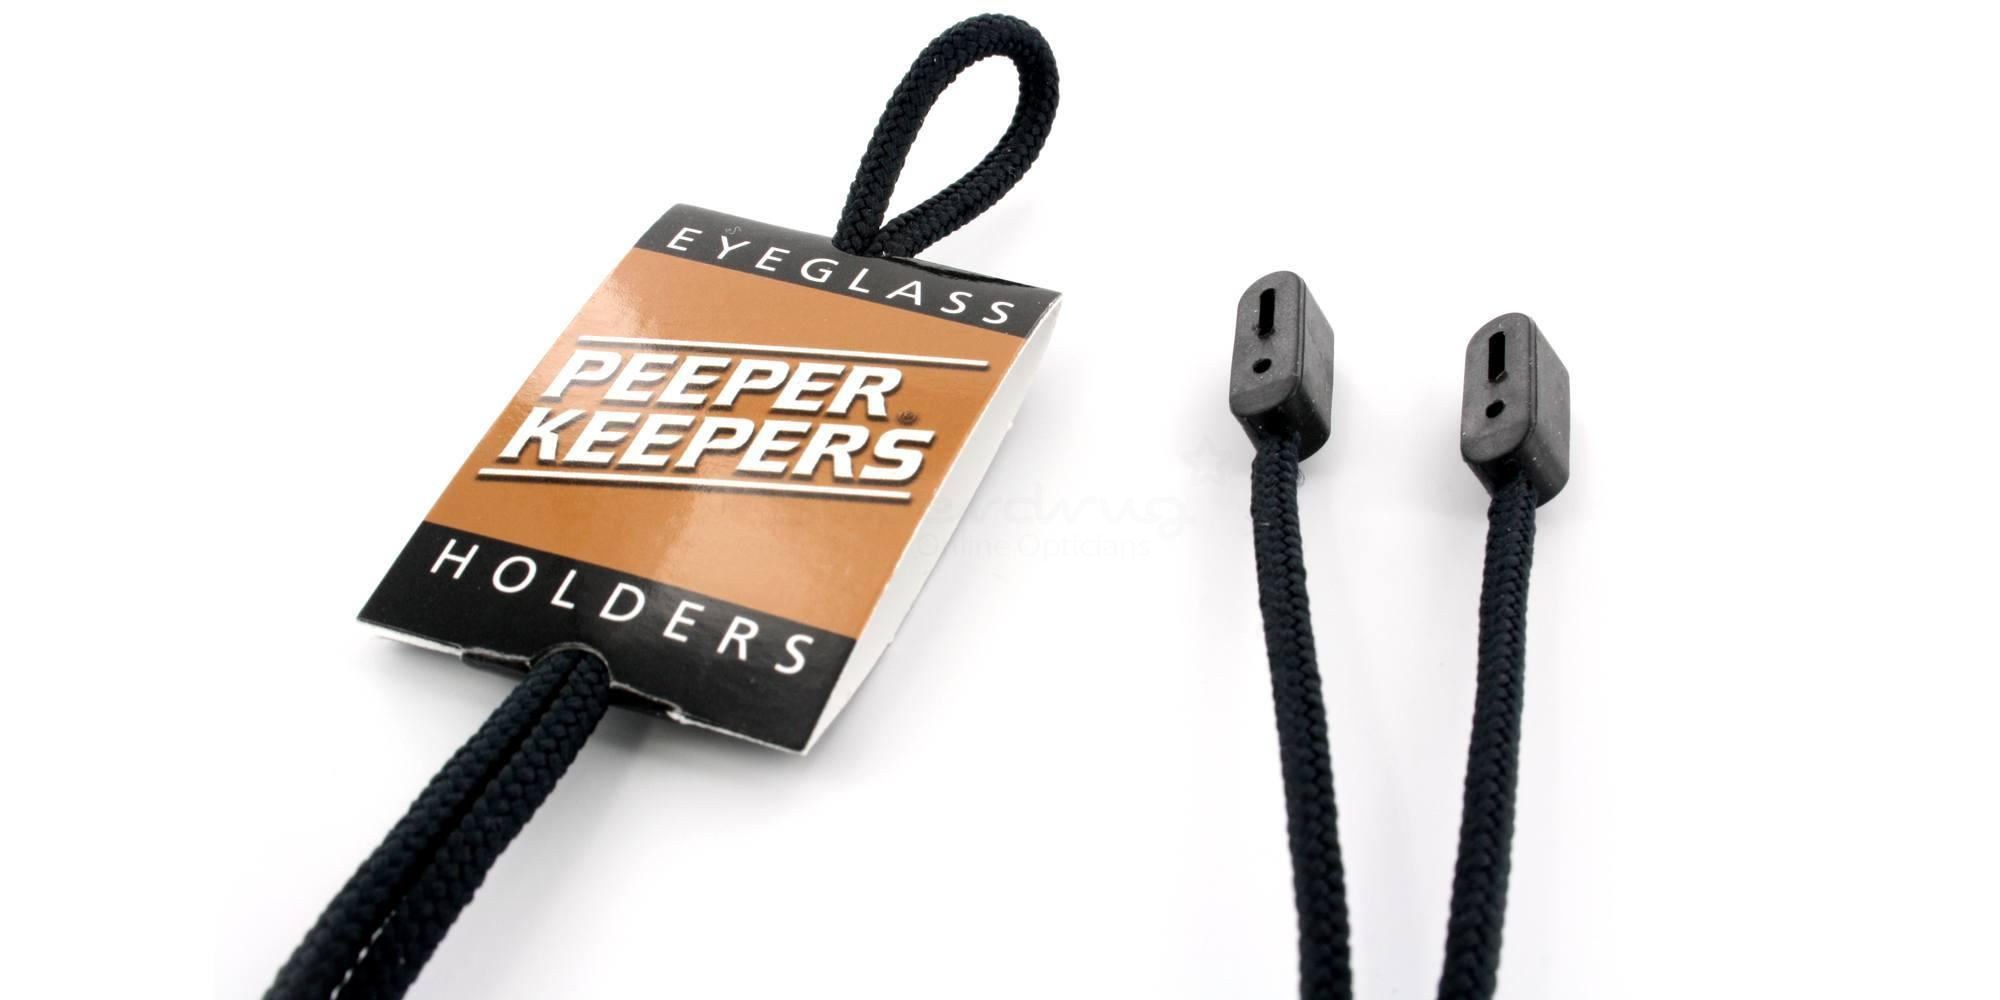 SCBK Supercord Black Lanyard Accessories, Accessories by Superdrug